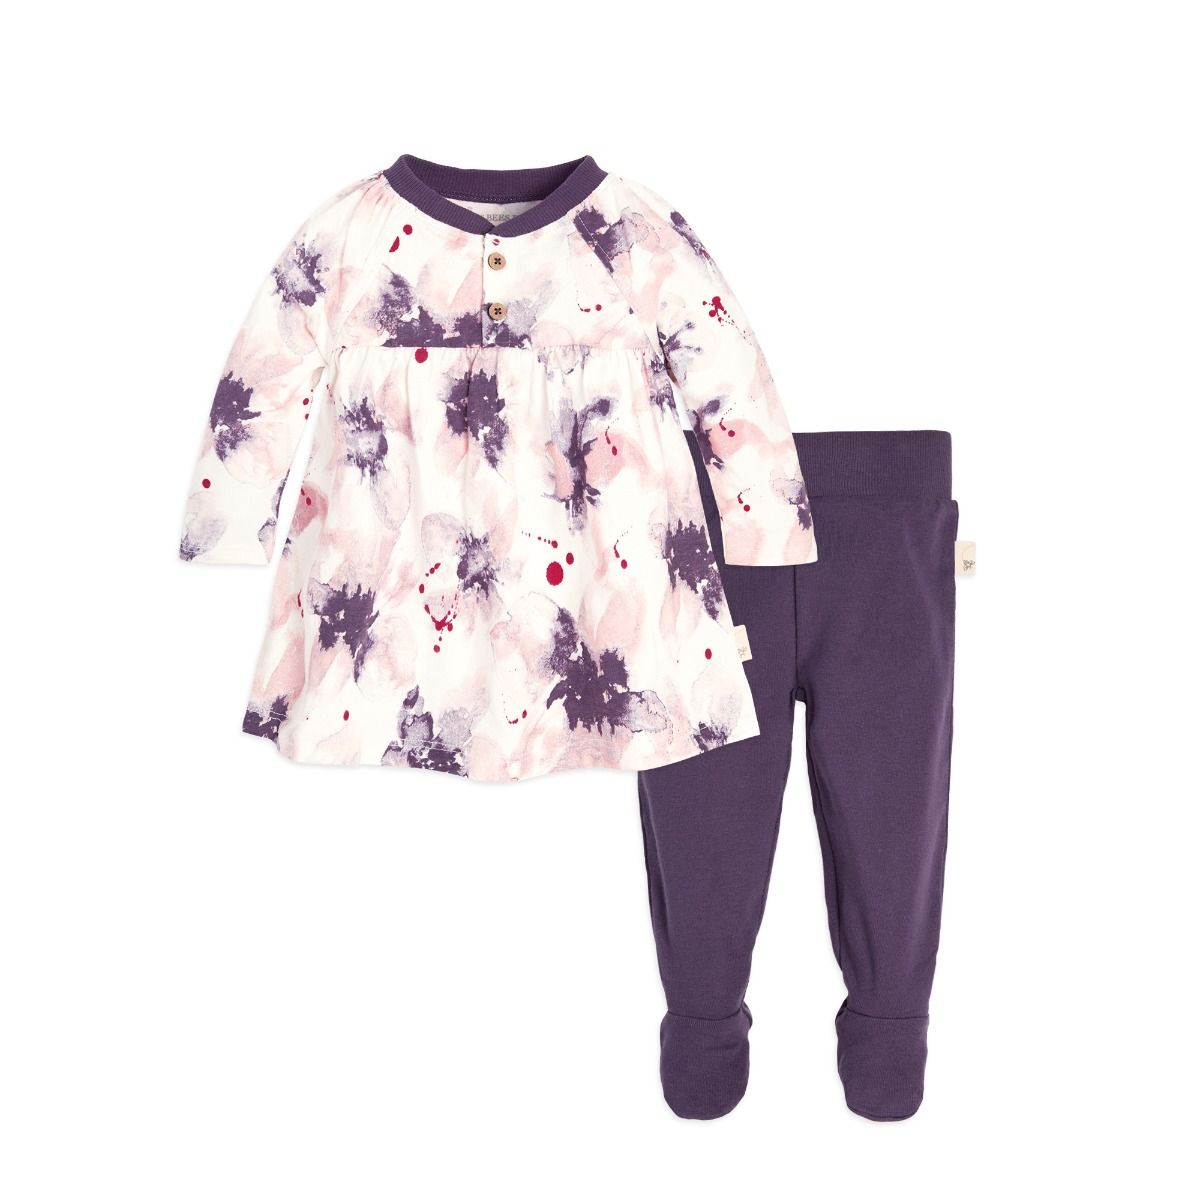 Exploded Petals Organic Baby Cotton Dress & Footed Pant Set